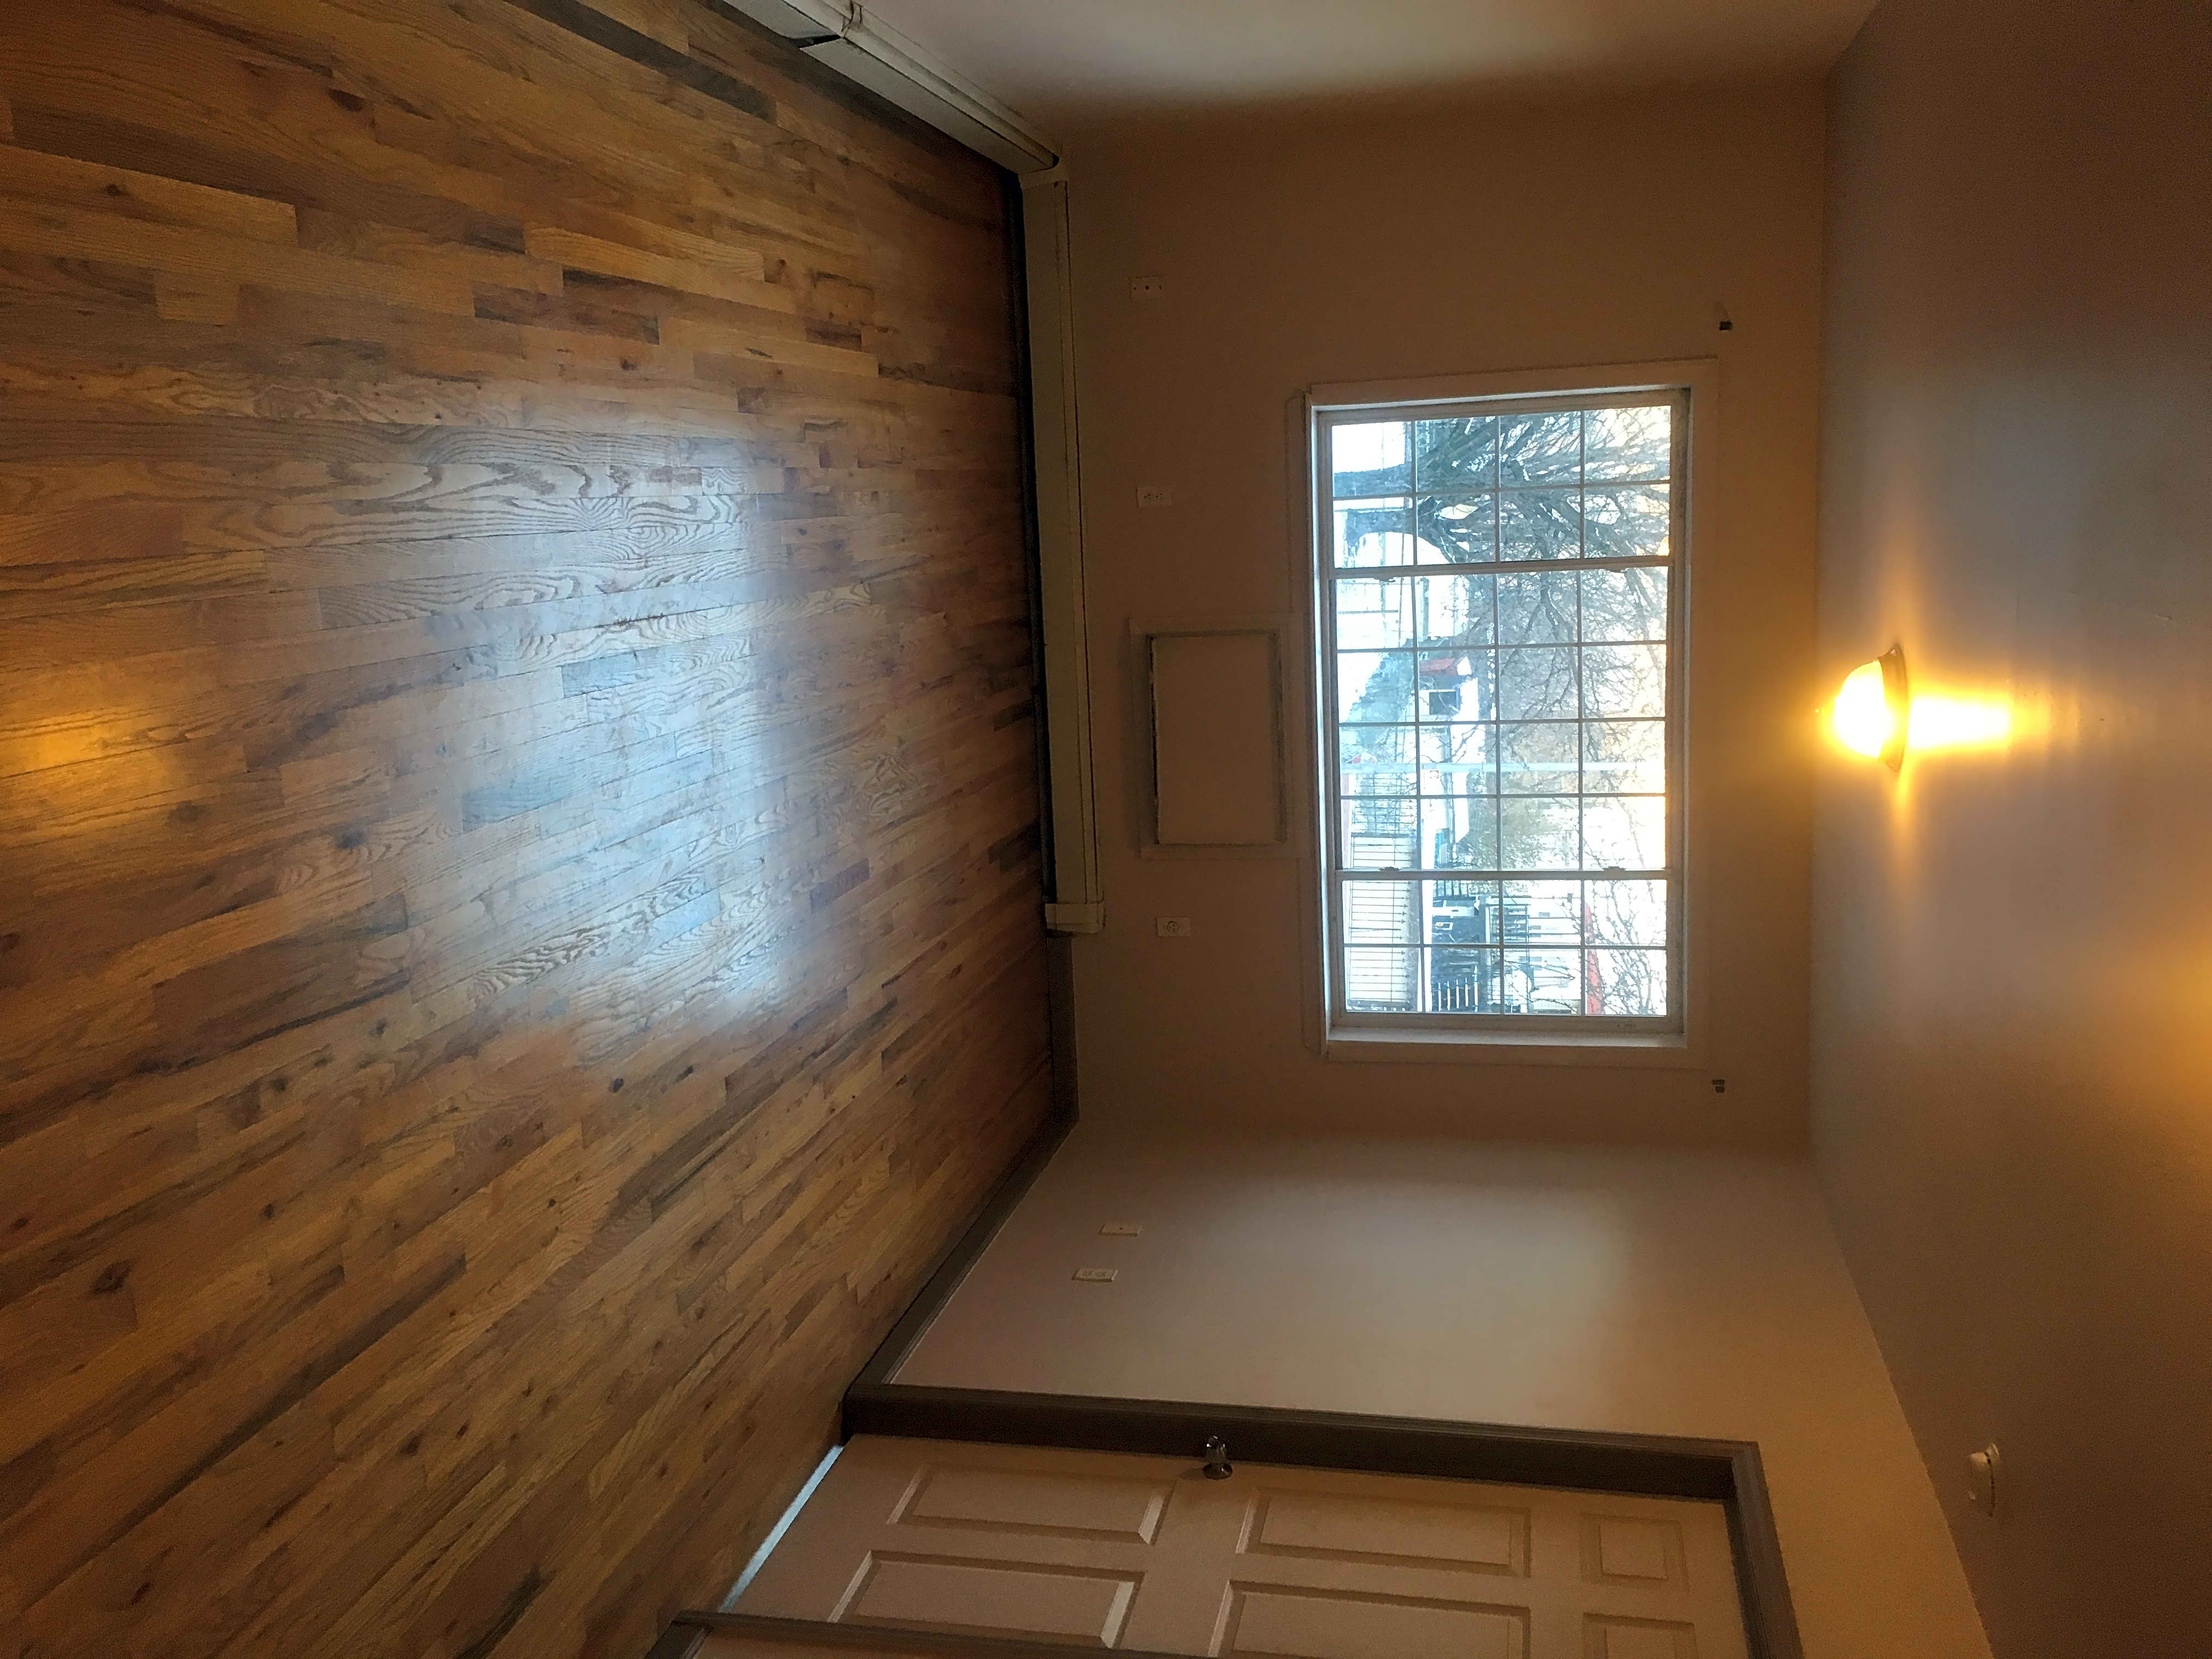 House for Rent in Bronx